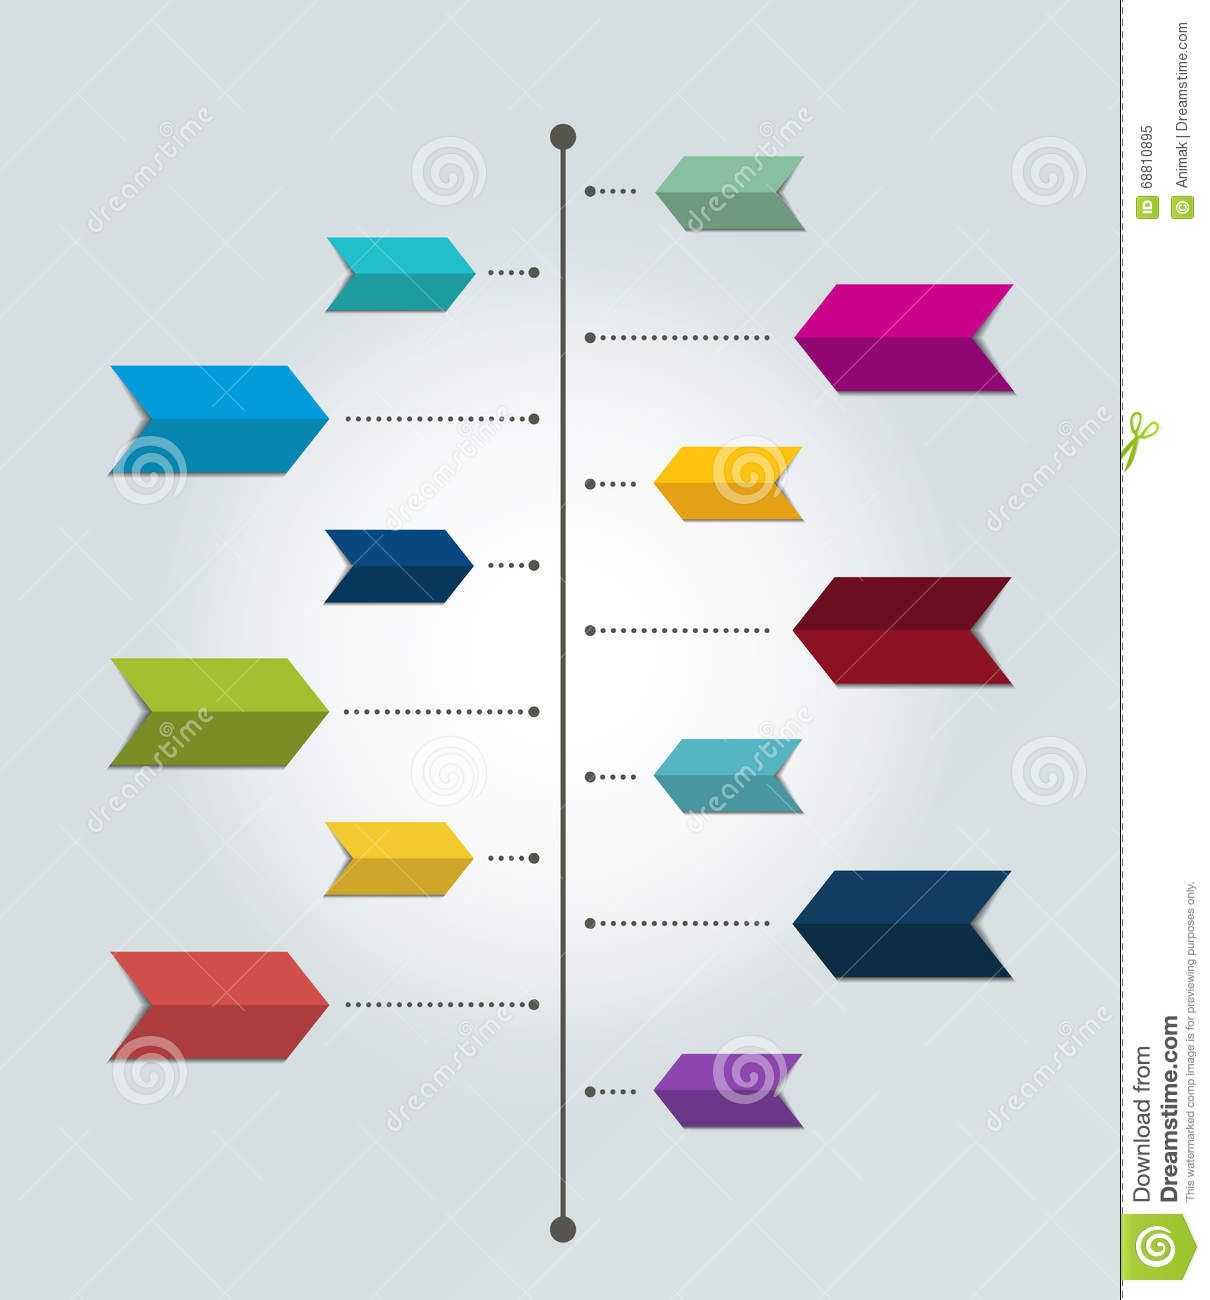 hight resolution of color shadow scheme diagram